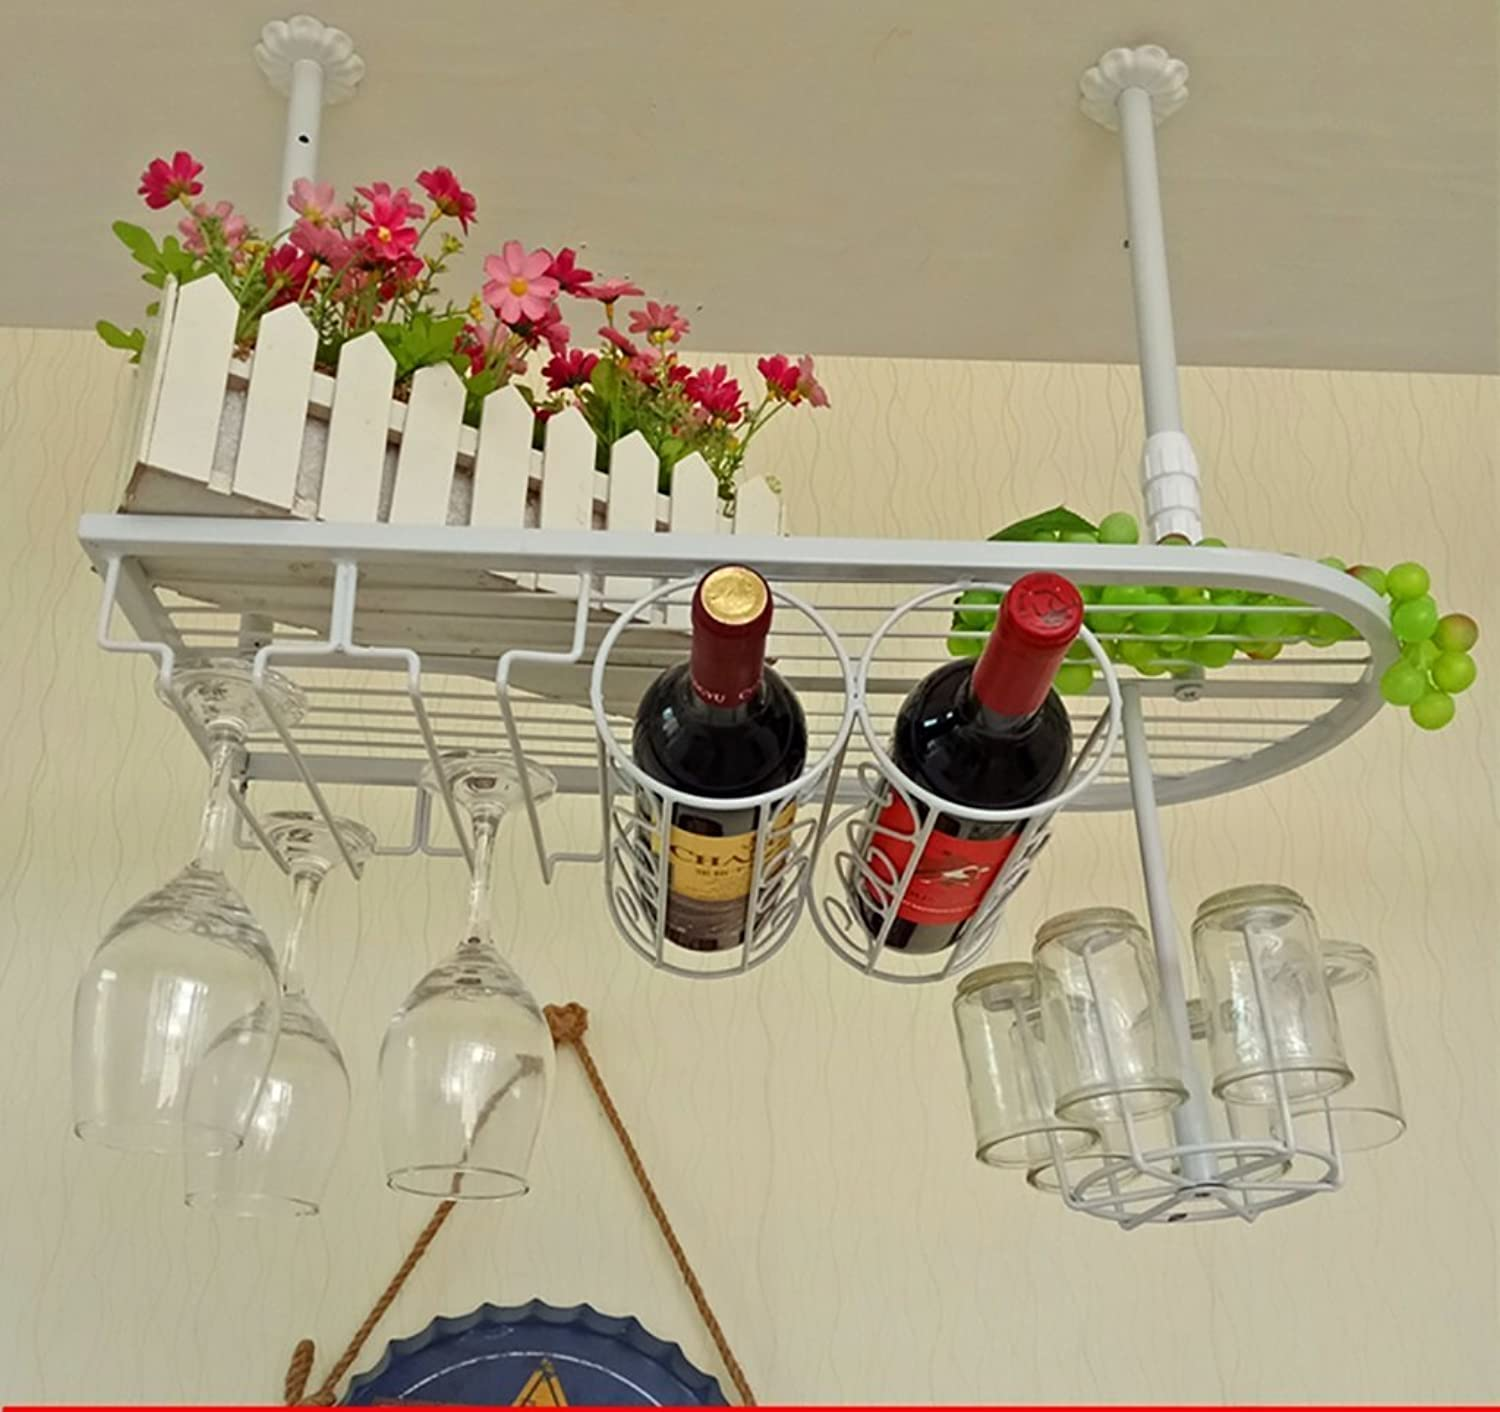 Red Wine Shelf Wrought Iron Black White Bronze Suspension Telescopic Hanger 3 colors 3 Multi-Function Applicable to Most Wines goblets Glasses Green Plants 3 Bottles of Wine Hanging 6 Glasses